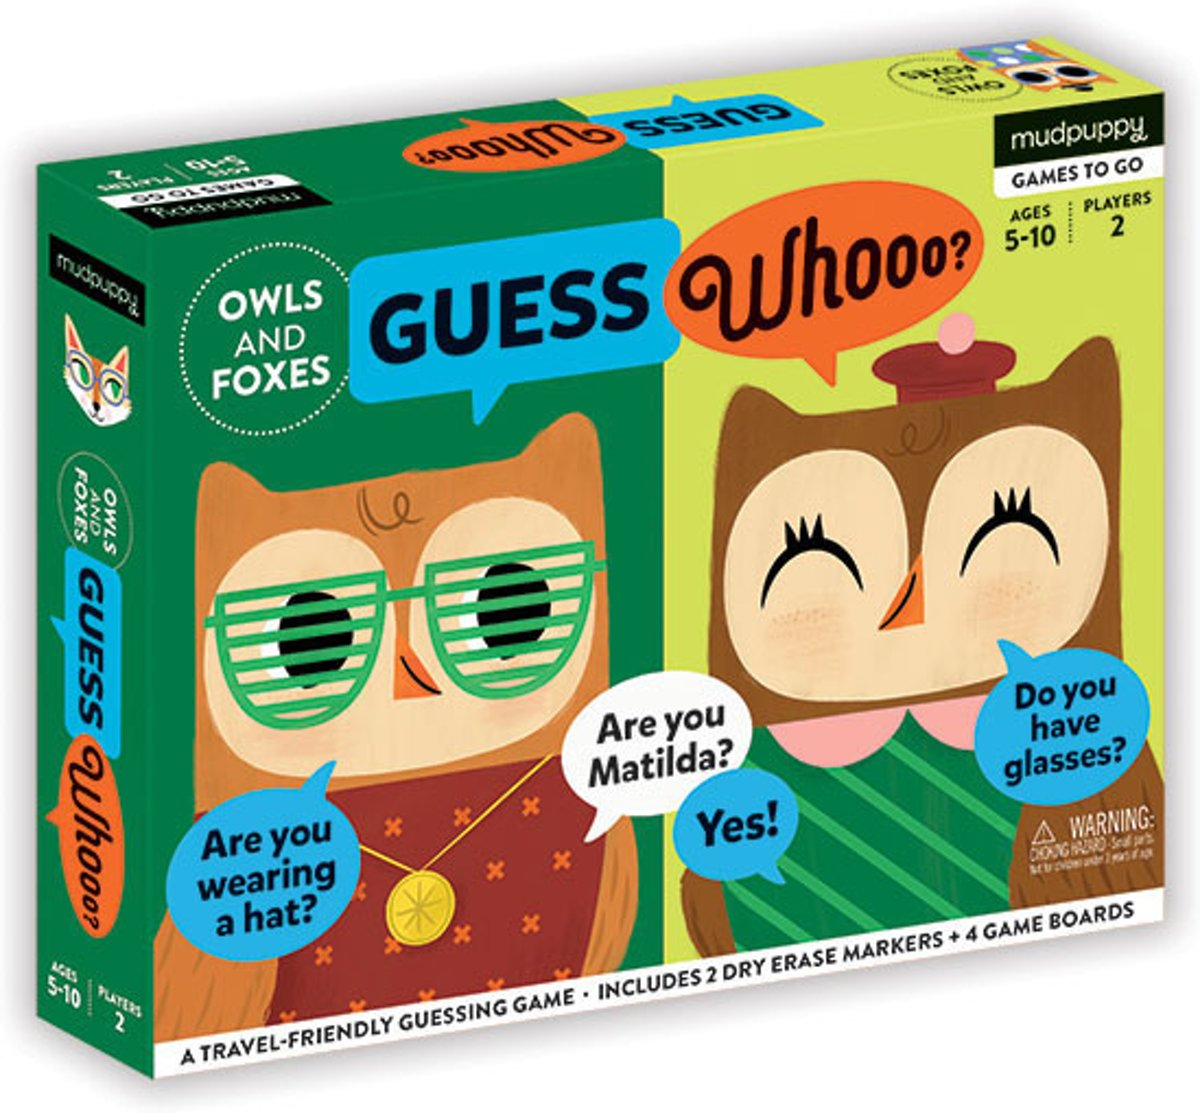 Mudpuppy Guessing Game - Owls & Foxes